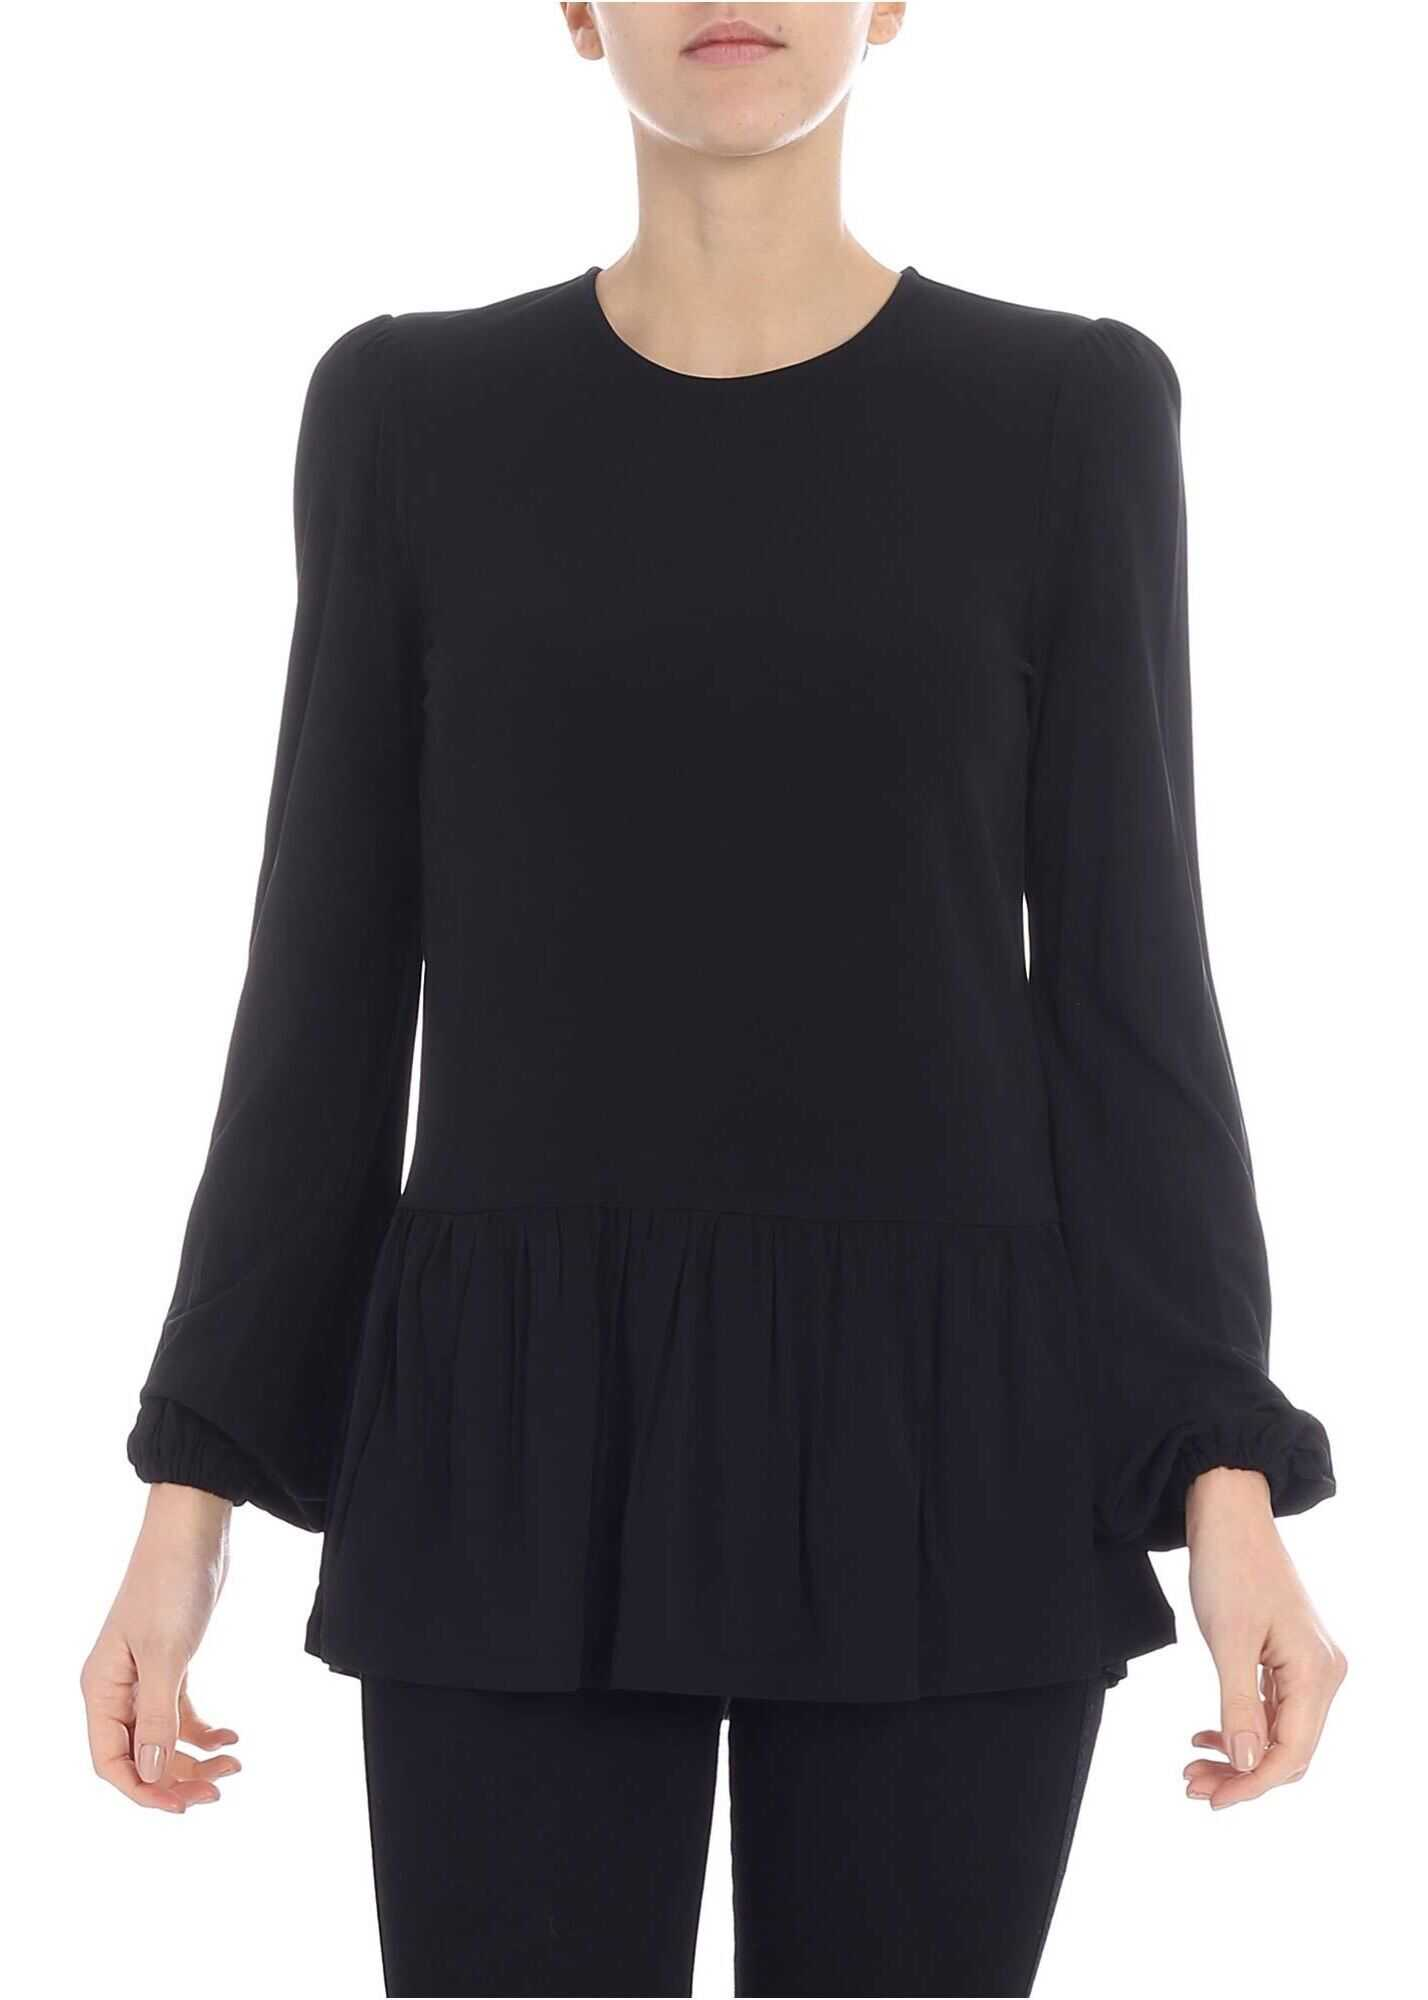 Black T-Shirt With Flounce